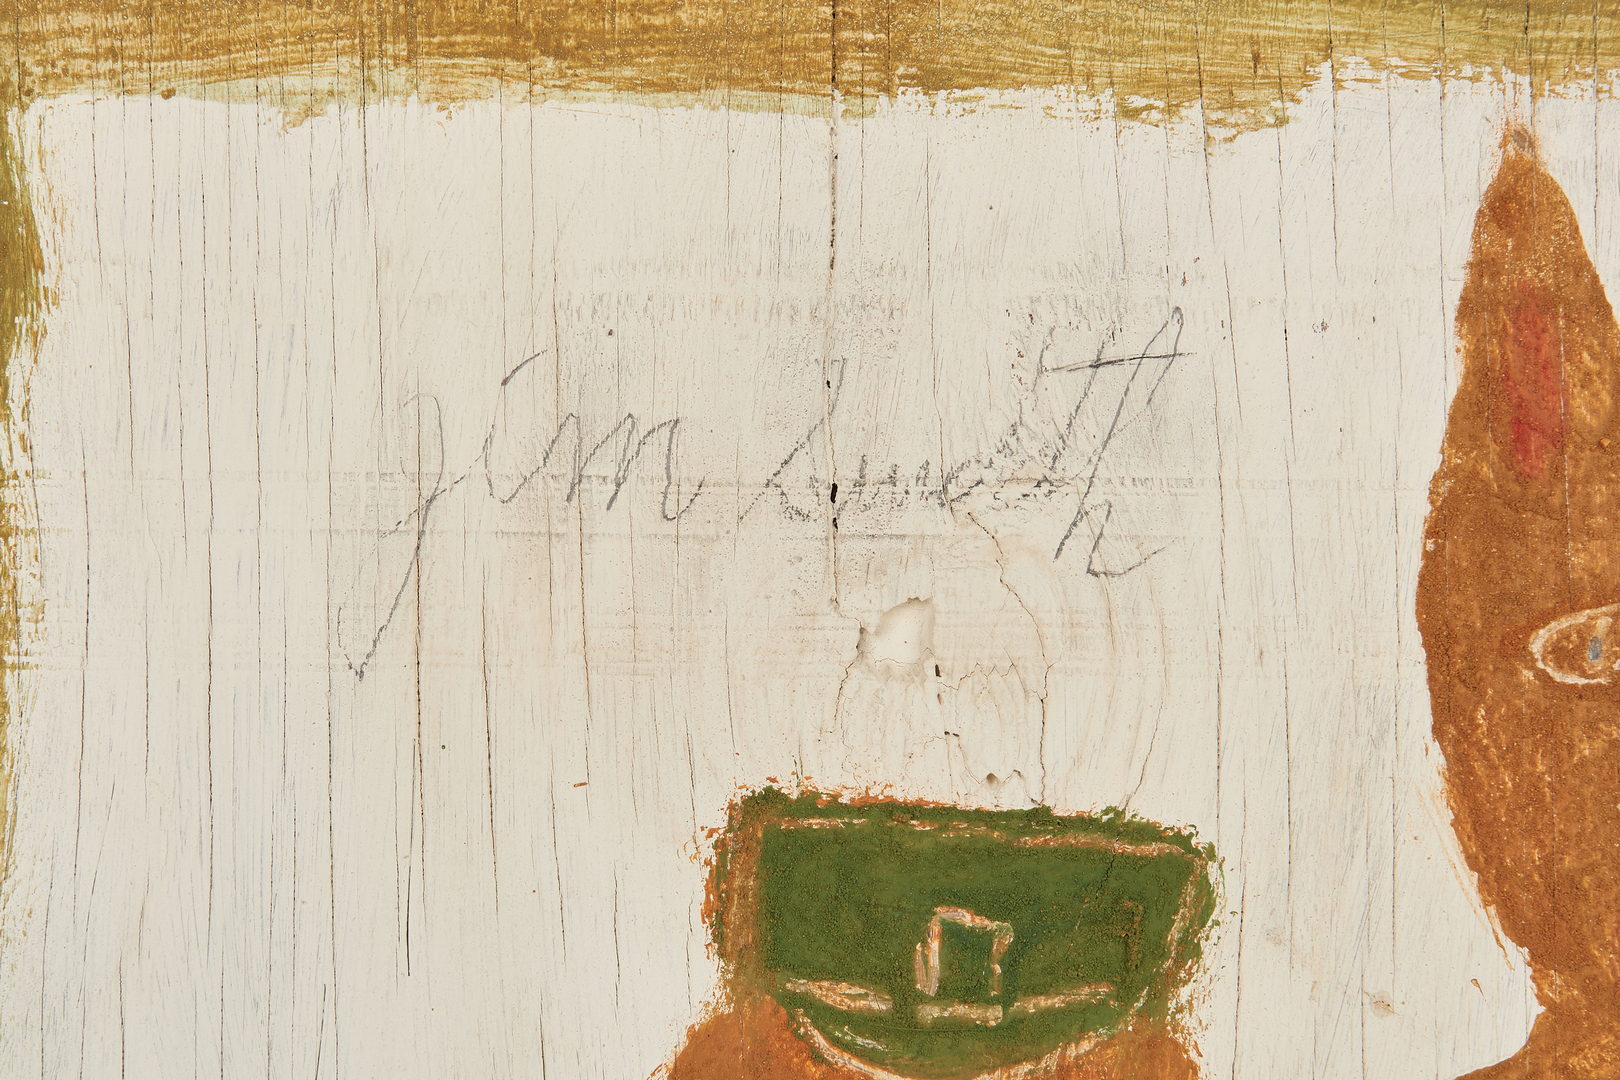 Lot 384: Jimmy Lee Sudduth Self Portrait with Toto